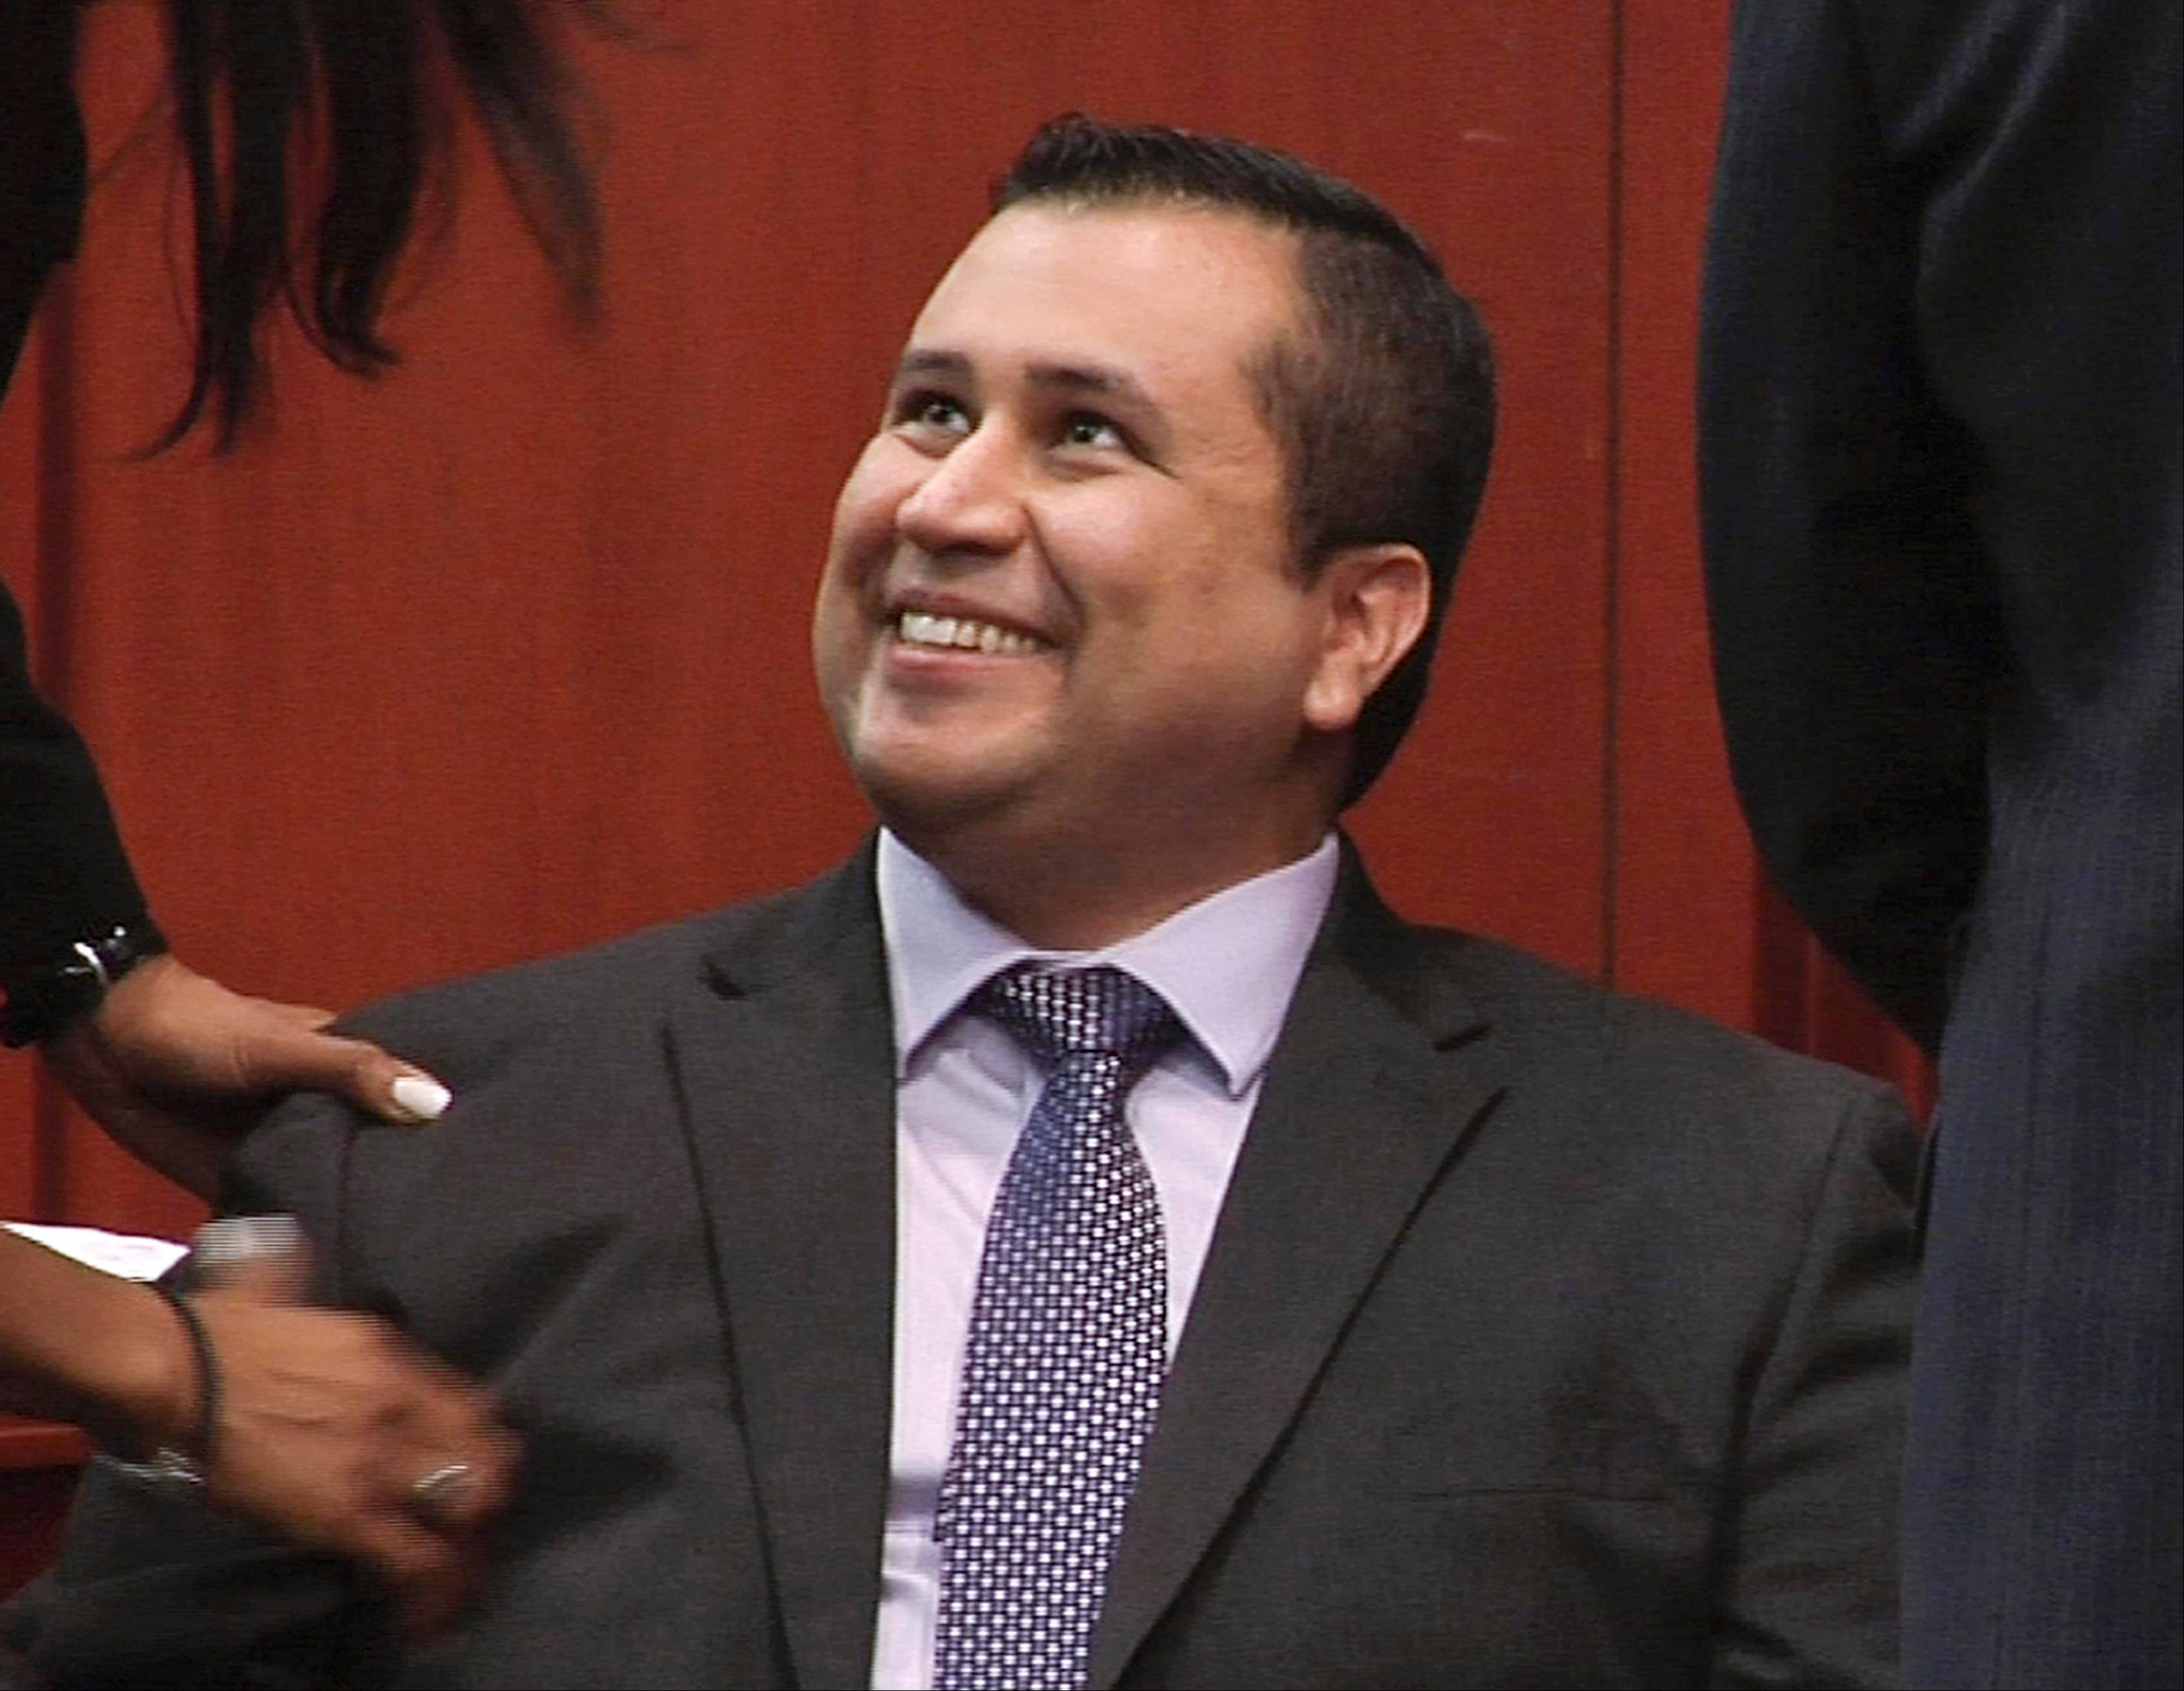 In this file image from video, George Zimmerman smiles after a not guilty verdict was handed down in his trial at the Seminole County Courthouse, Sunday, July 14, 2013, in Sanford, Fla. Officials say Zimmerman helped rescue four people from an overturned vehicle last week, just days after he was cleared of all charges in the shooting death of Trayvon Martin.